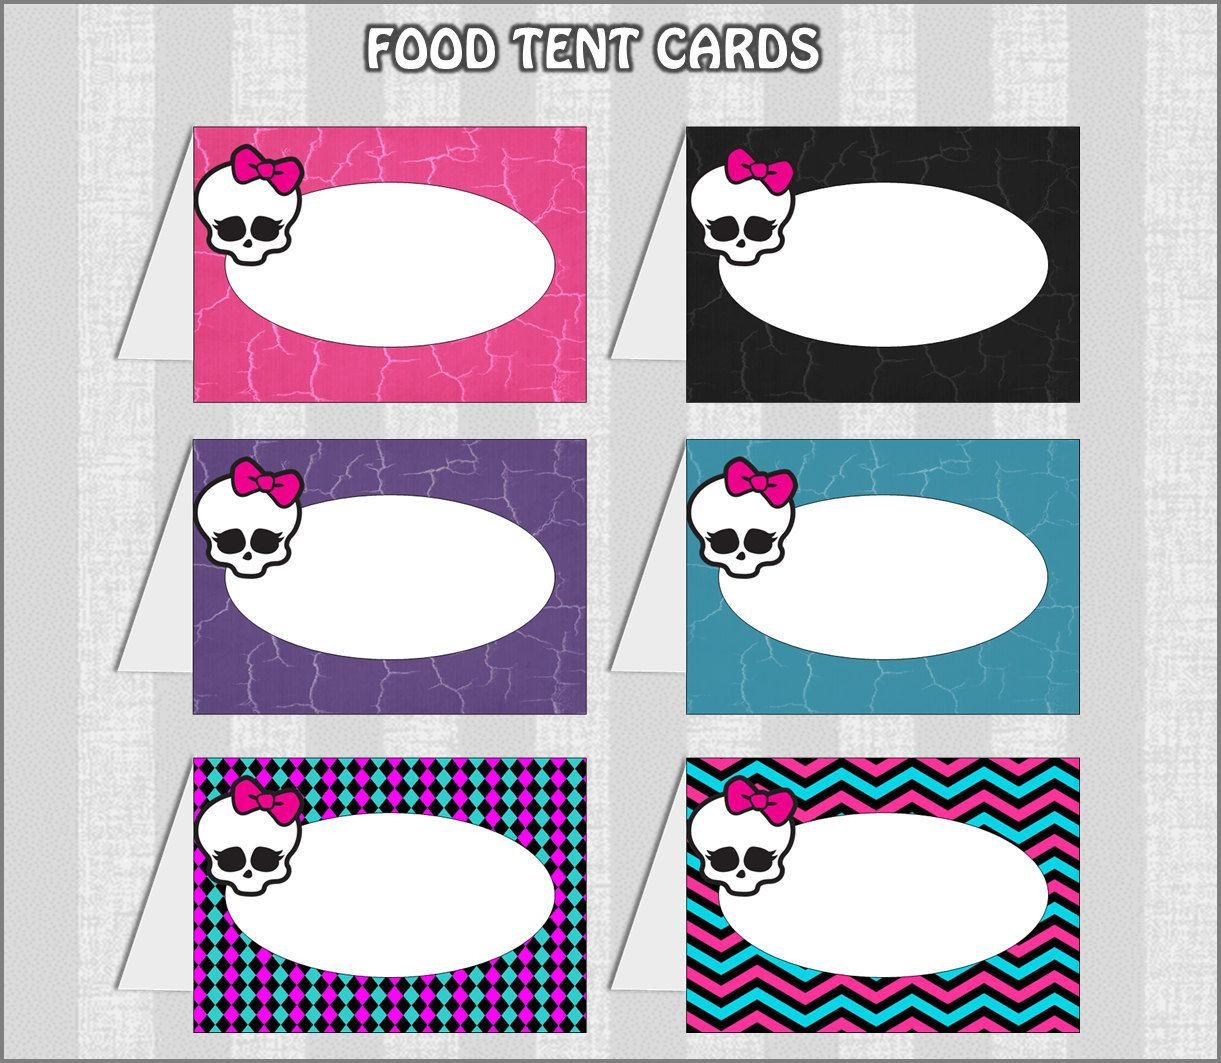 MONSTER HIGH Inspire Food Label Tent Cards  sc 1 st  Pinterest & MONSTER HIGH Inspire Food Label Tent Cards | Monster High party ...